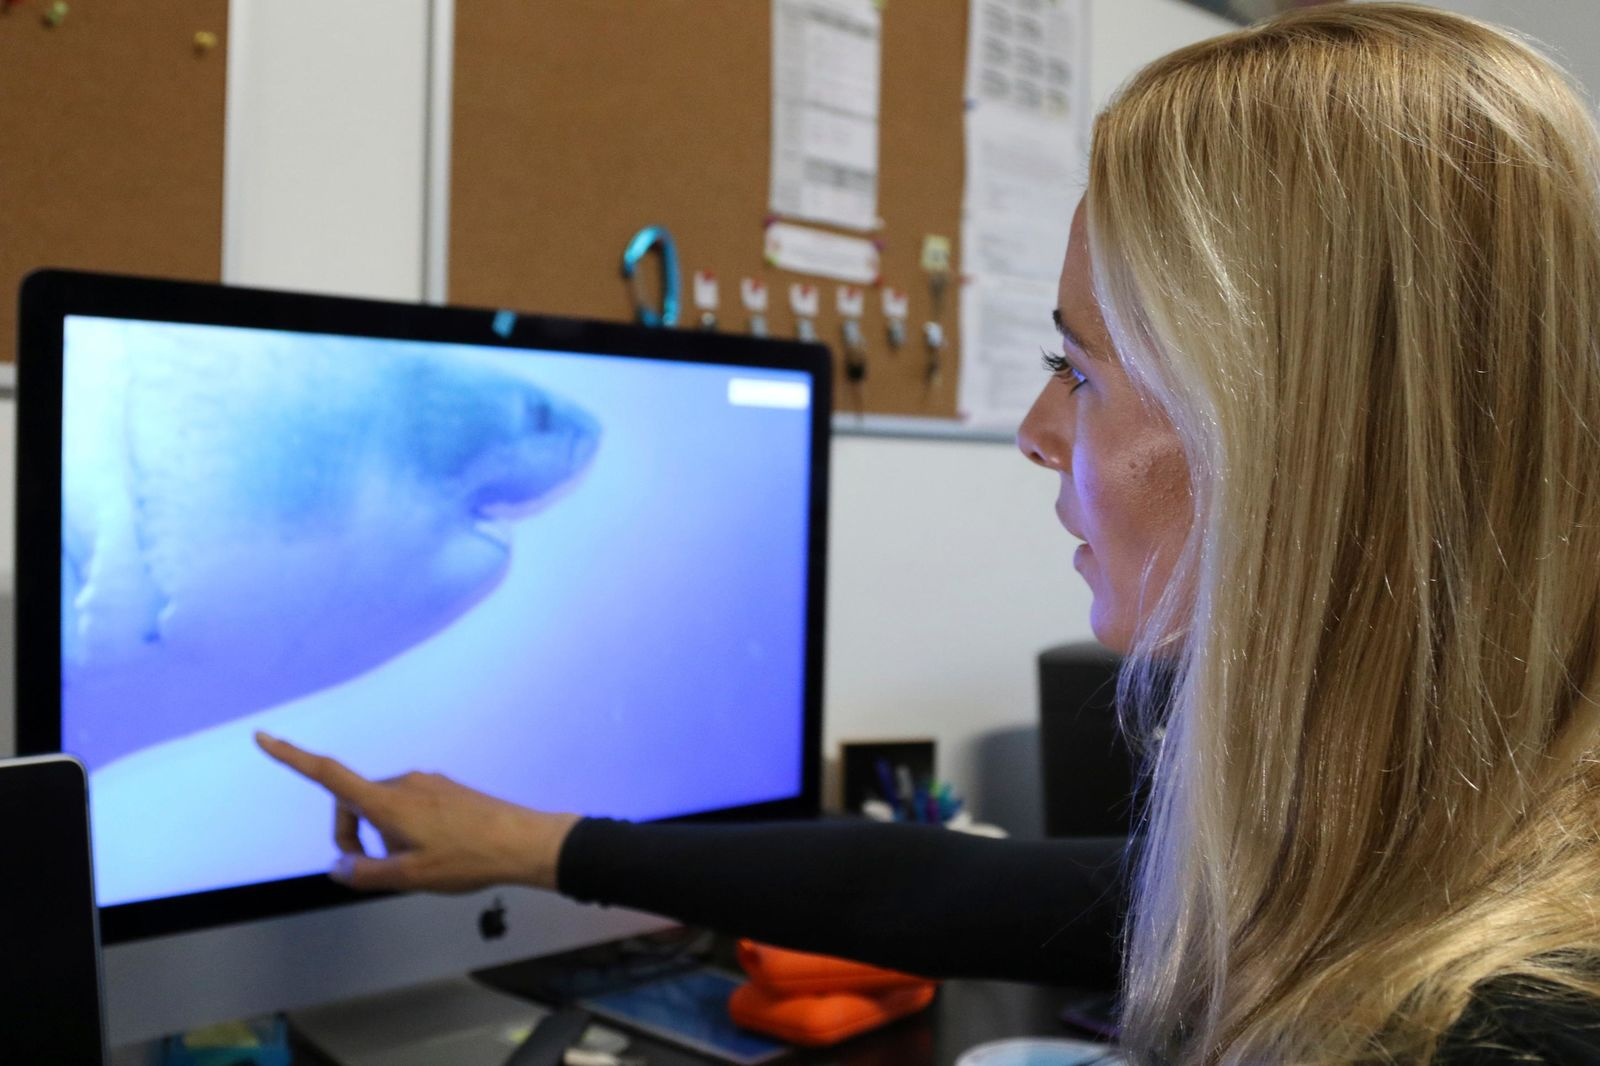 Ocean Ramsey, co-founder of One Ocean Diving and Research, reviews footage of her encounter with a great white shark, Thursday, Jan. 17, 2019 in Haleiwa, Hawaii.{ } (AP Photo/Caleb Jones)